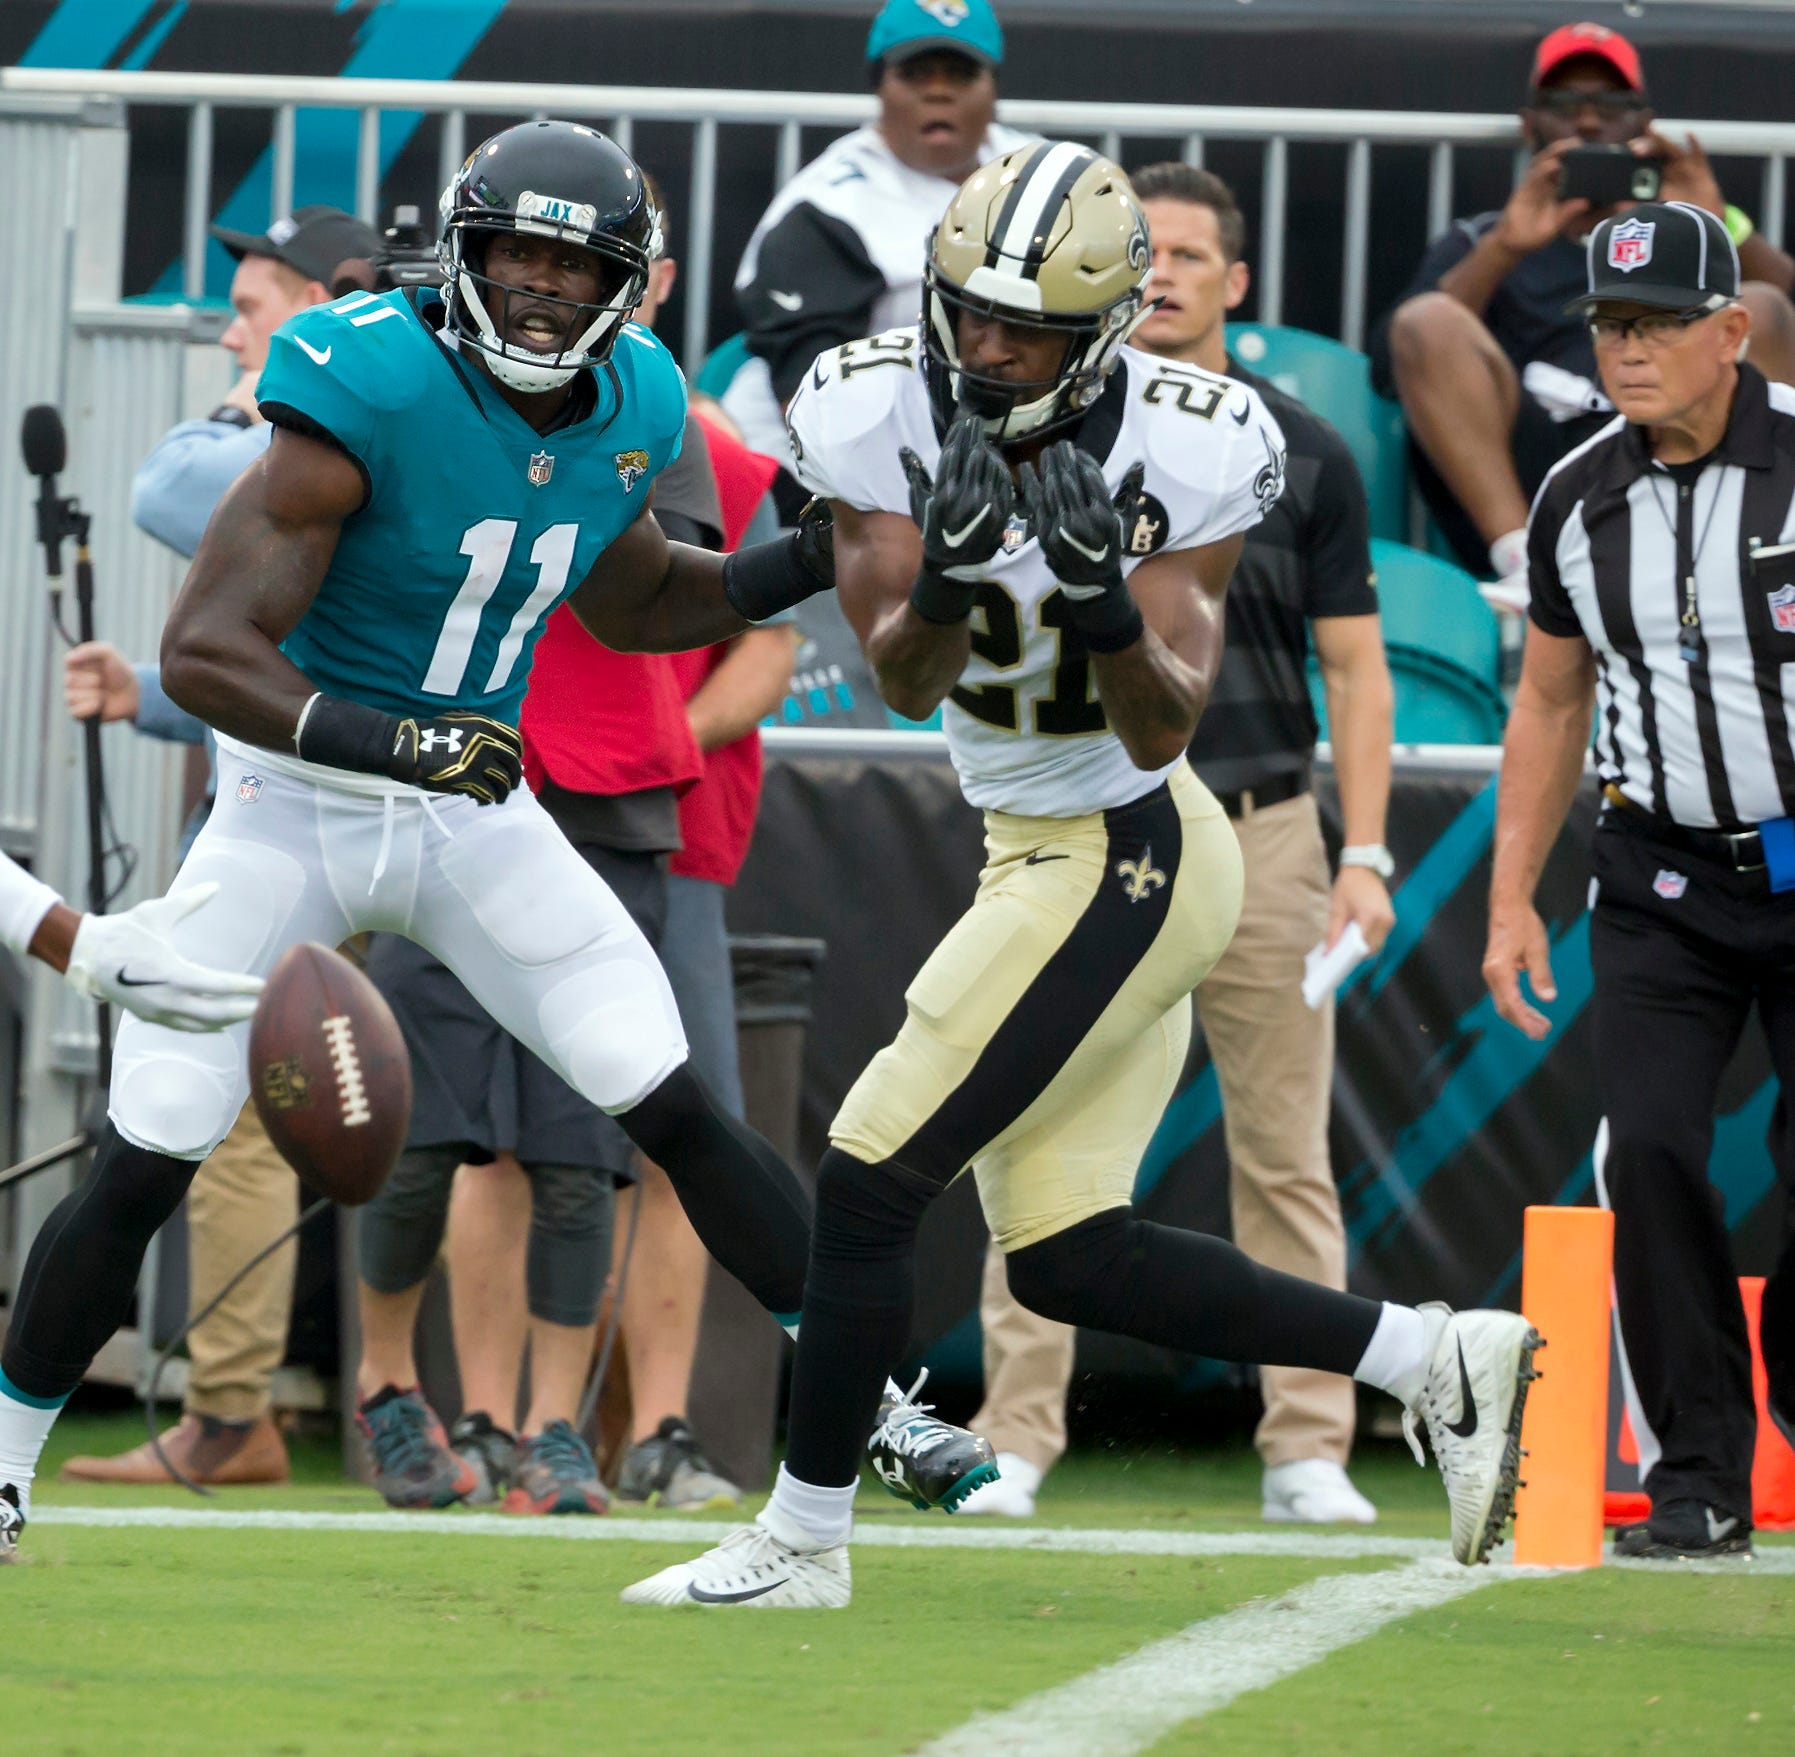 New Orleans Saints defensive back Patrick Robinson (21) breaks up a pass intended for Jacksonville Jaguars wide receiver Marqise Lee (11) in the end zone during last week's preseason game.